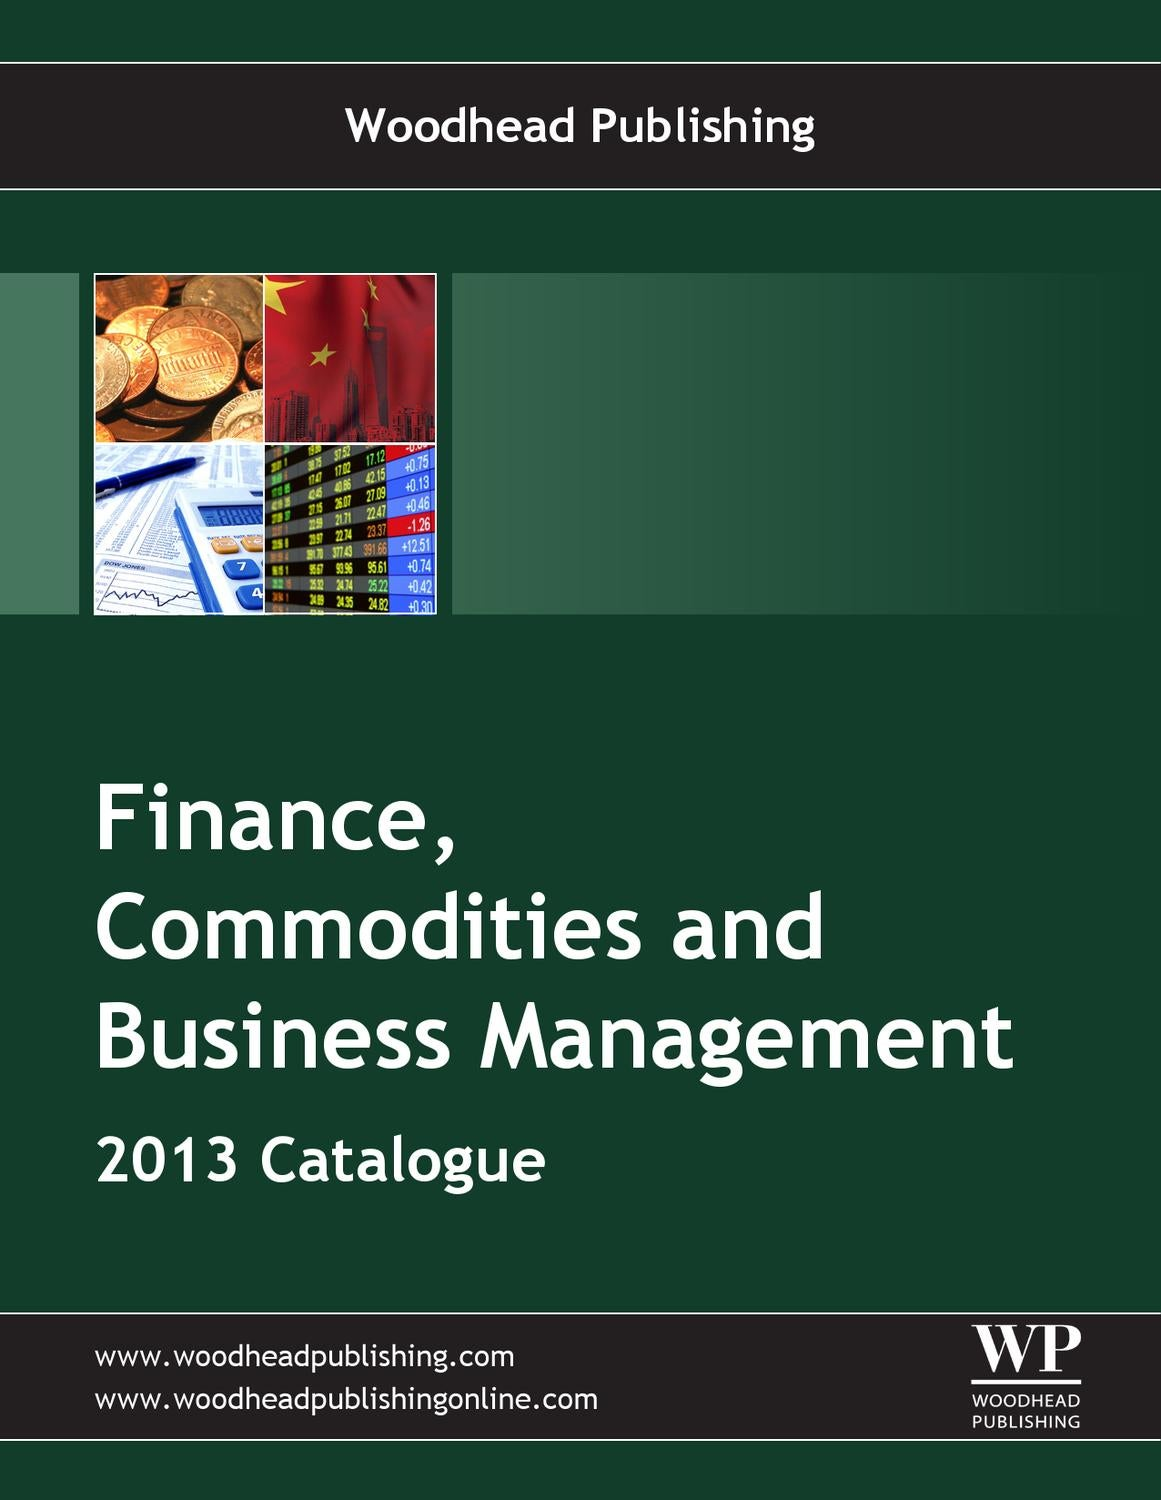 Finance, Commodities and Business Studies 2013 by Woodhead